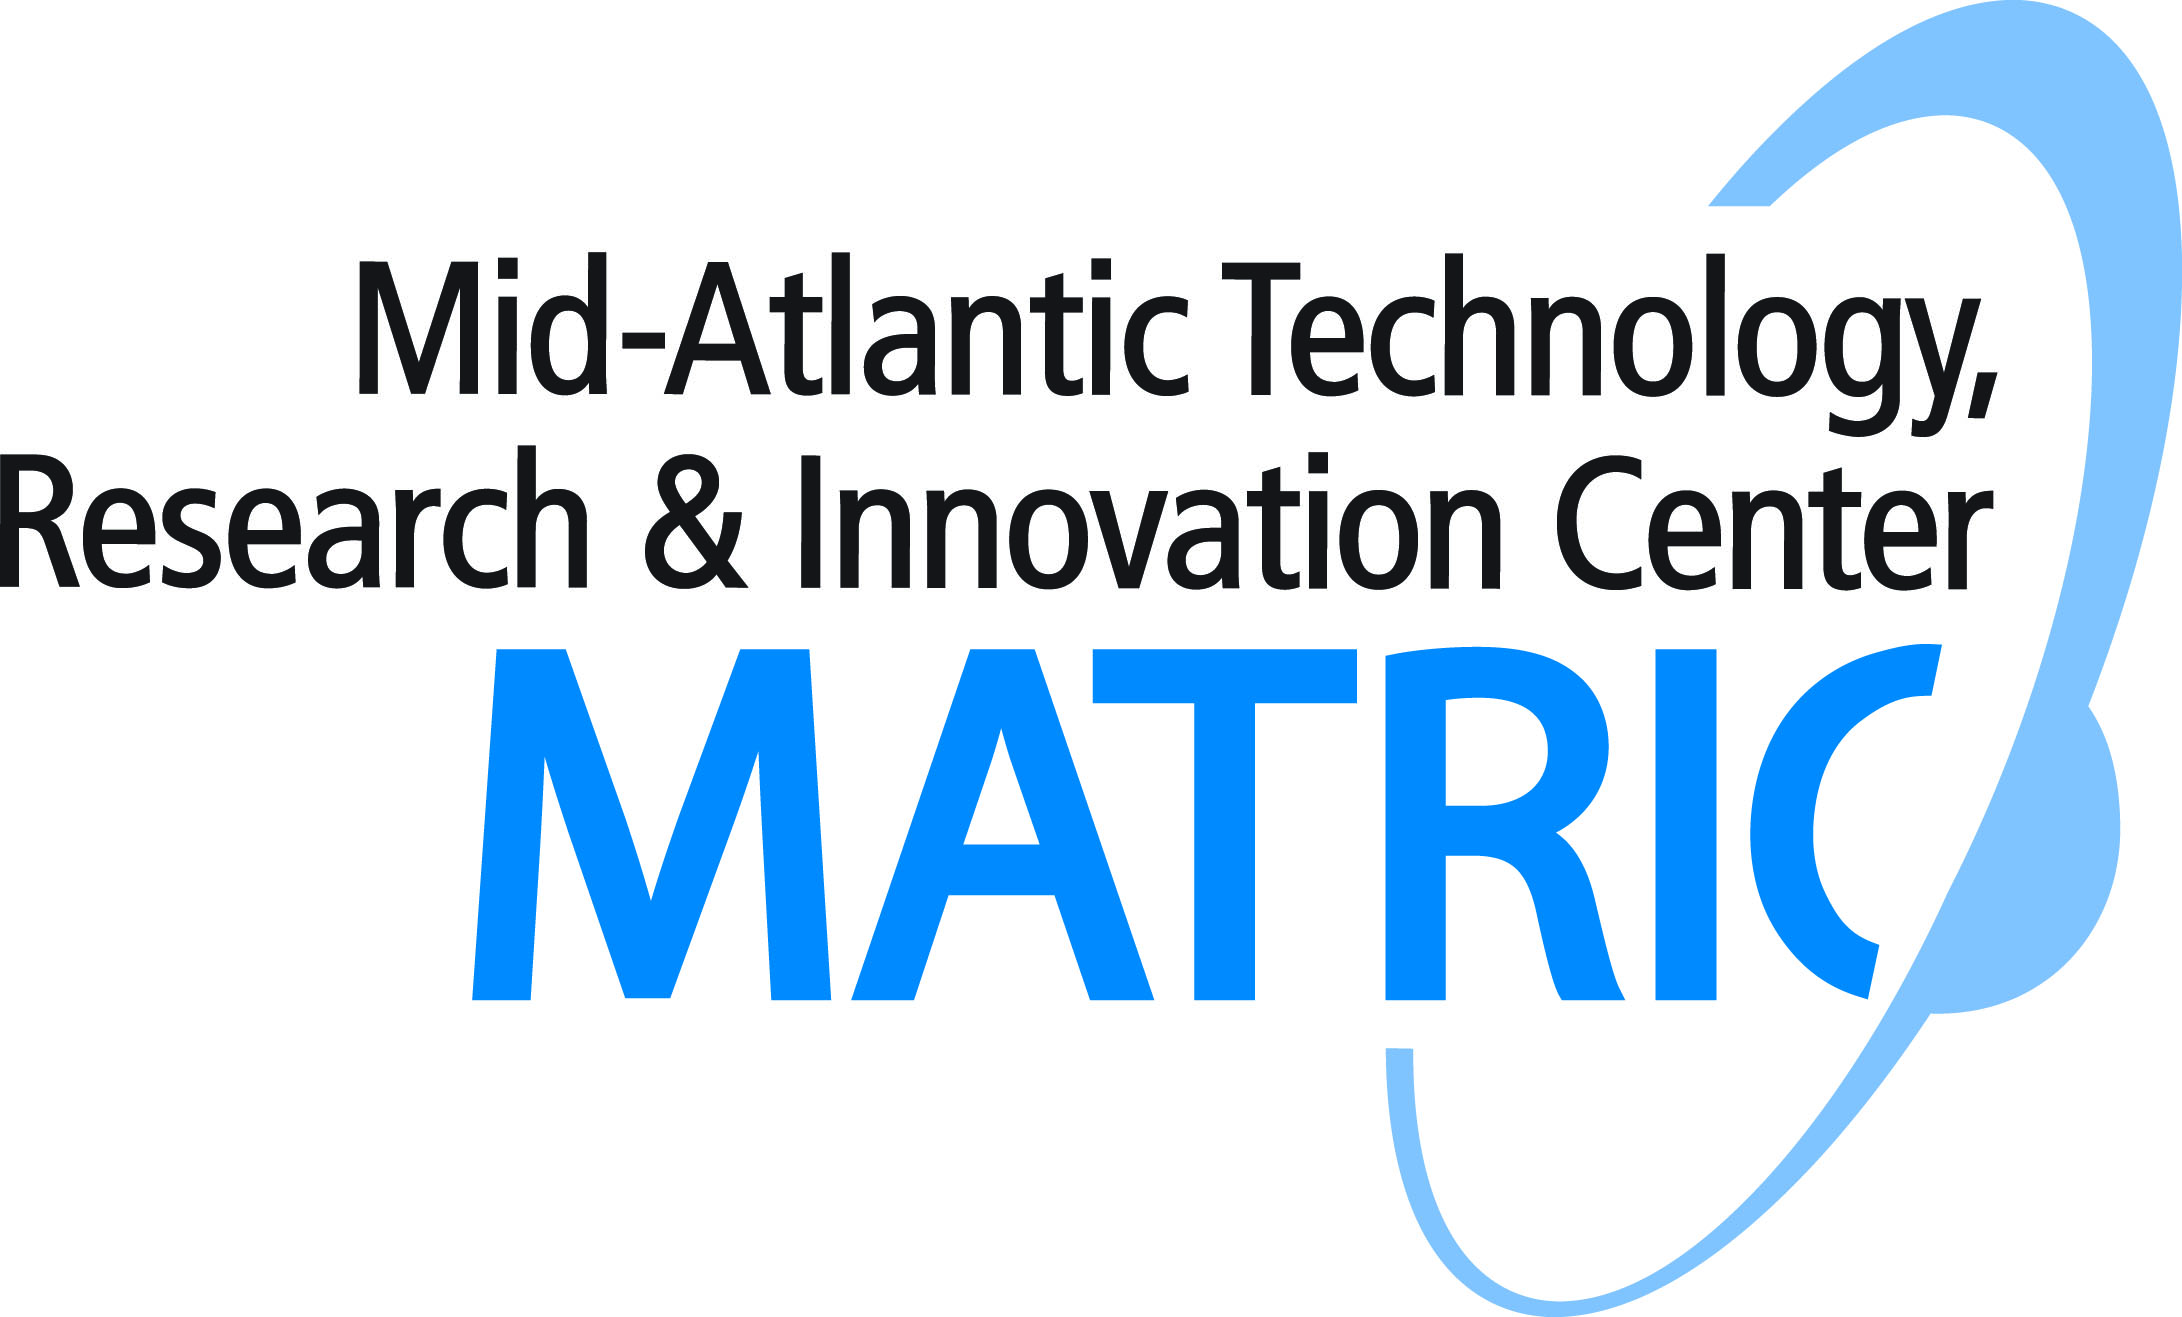 Technology Innovation Logo Technologies Division For